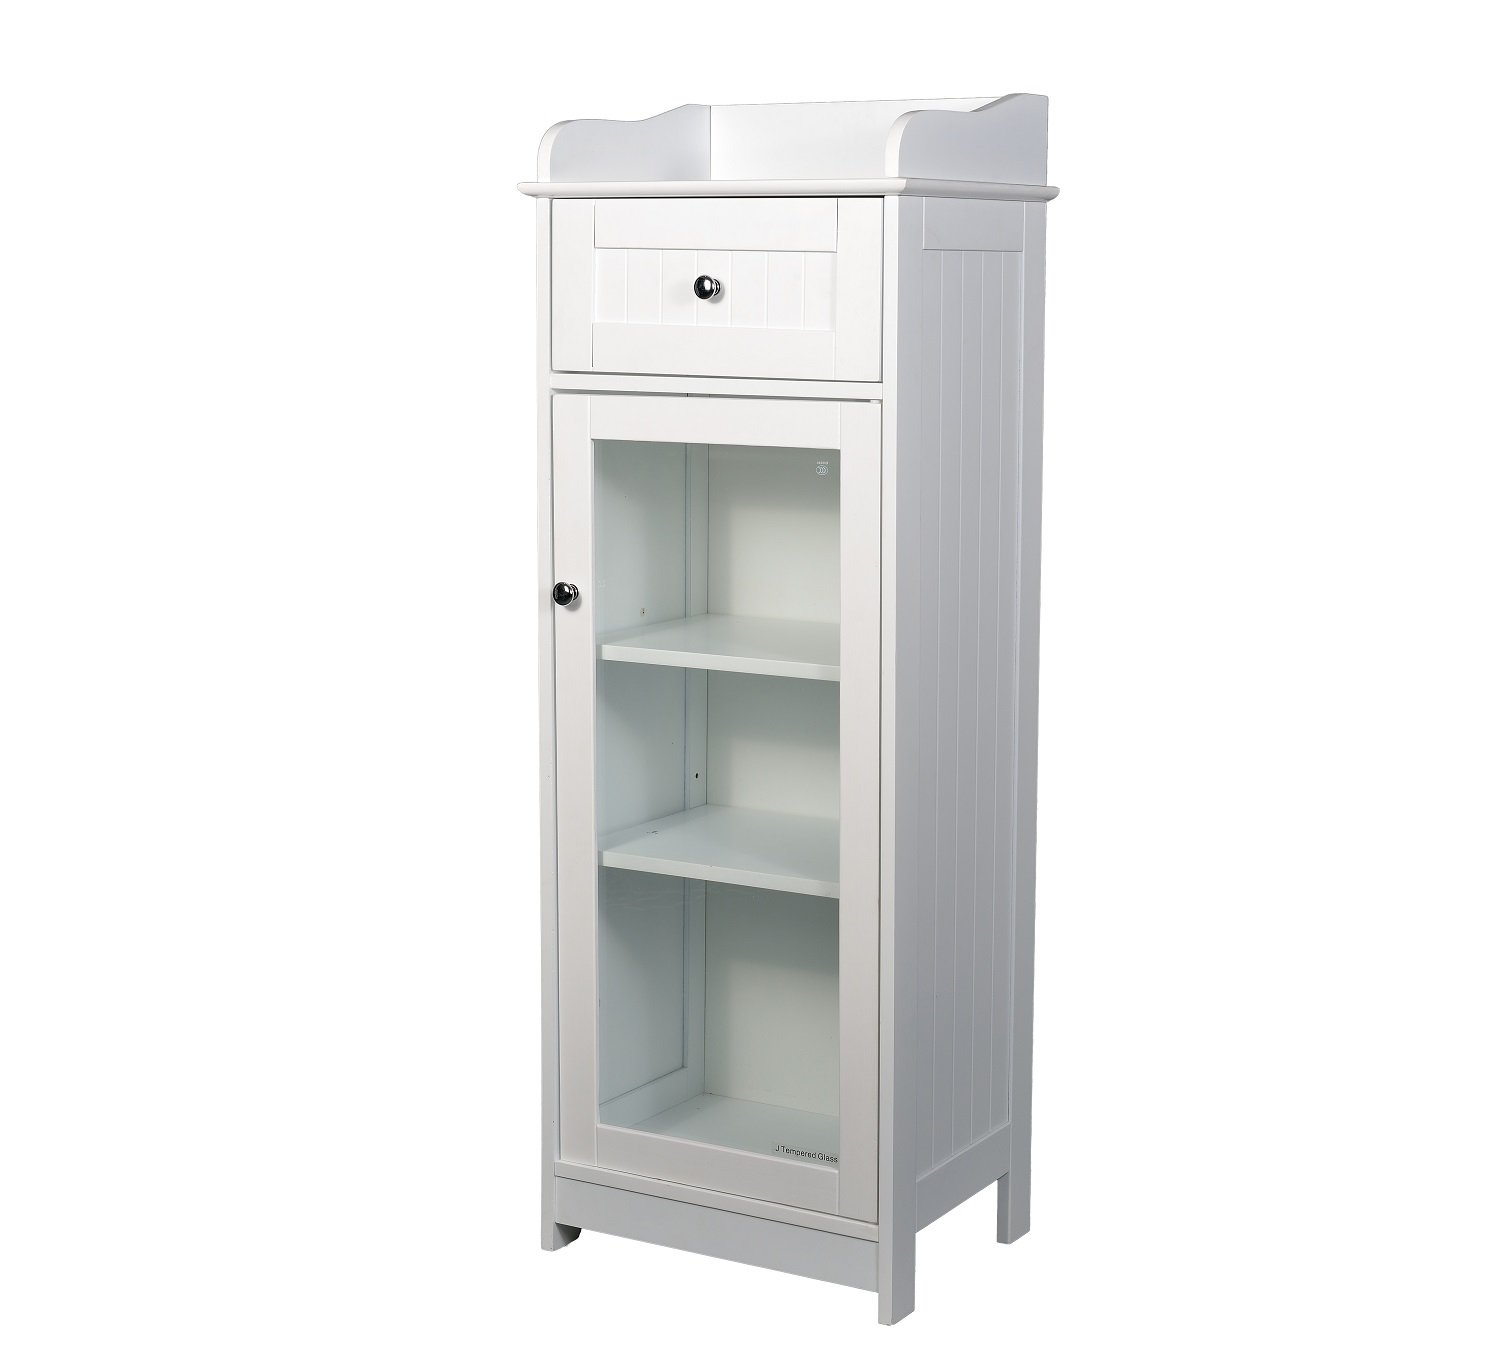 Home Source - Classic Clear MDF Bathroom 1 Door 1 Drawer Low Storage Cabinet in White